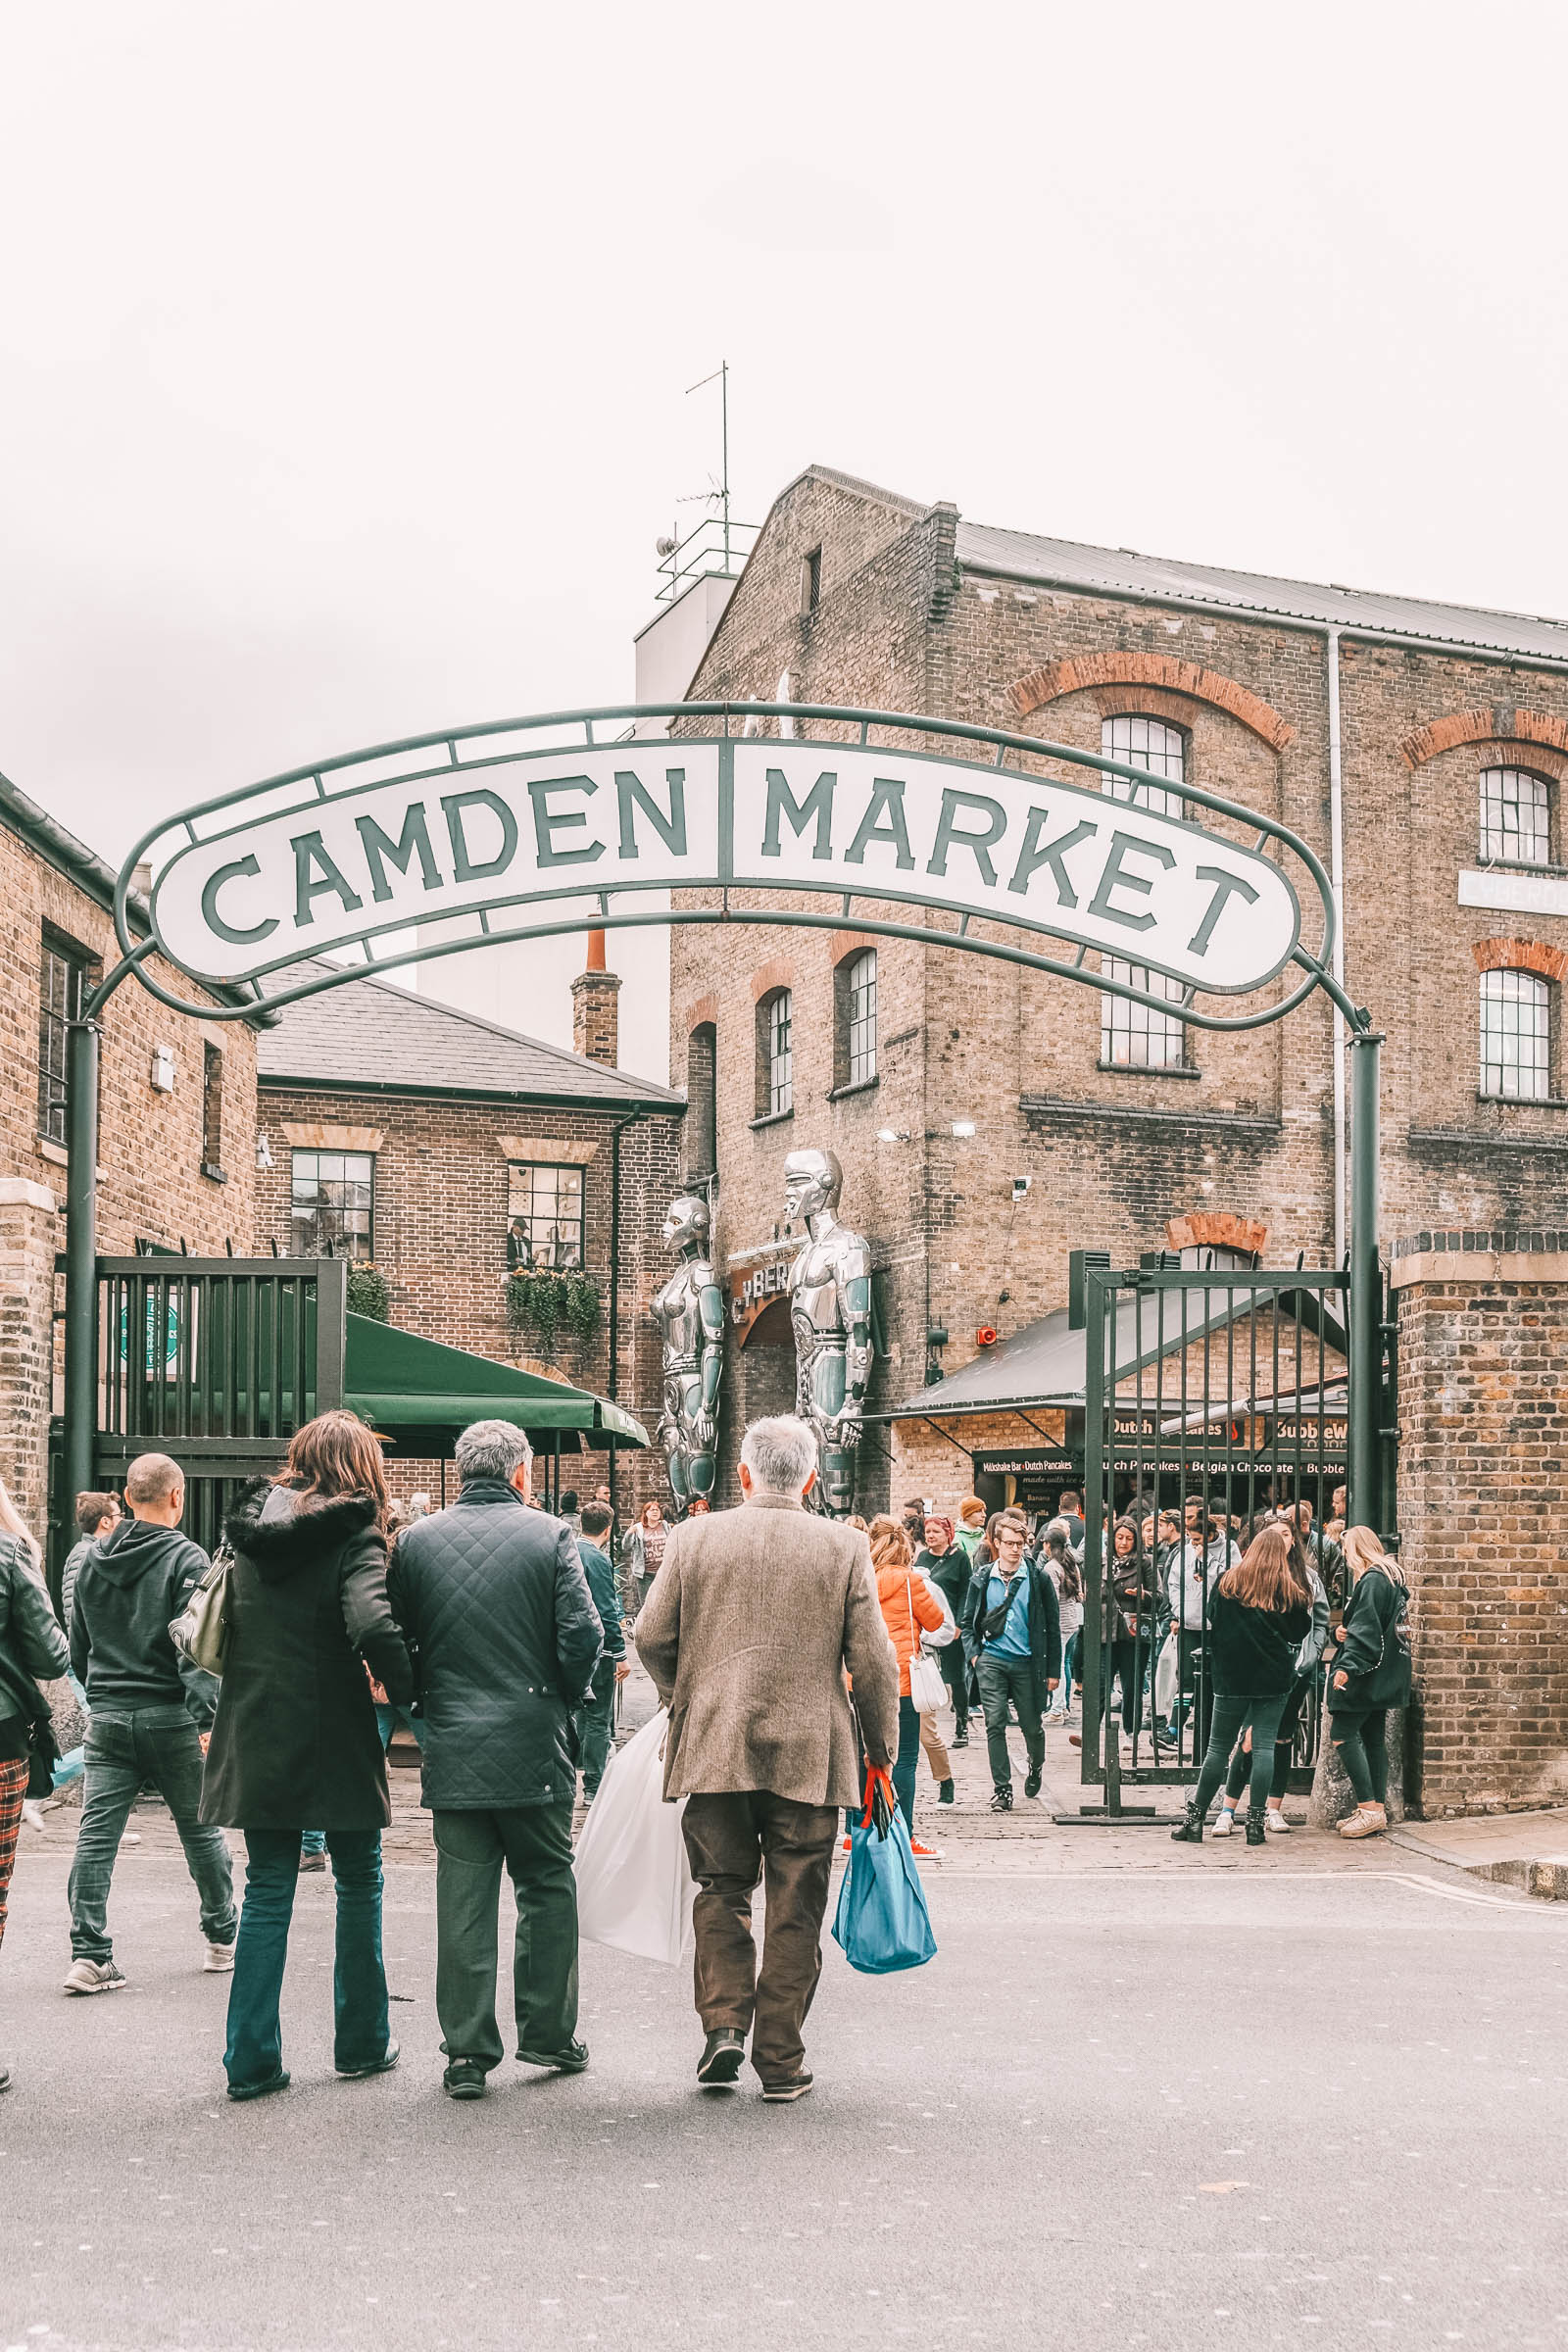 9 Best Things To Do In Camden - London (13)